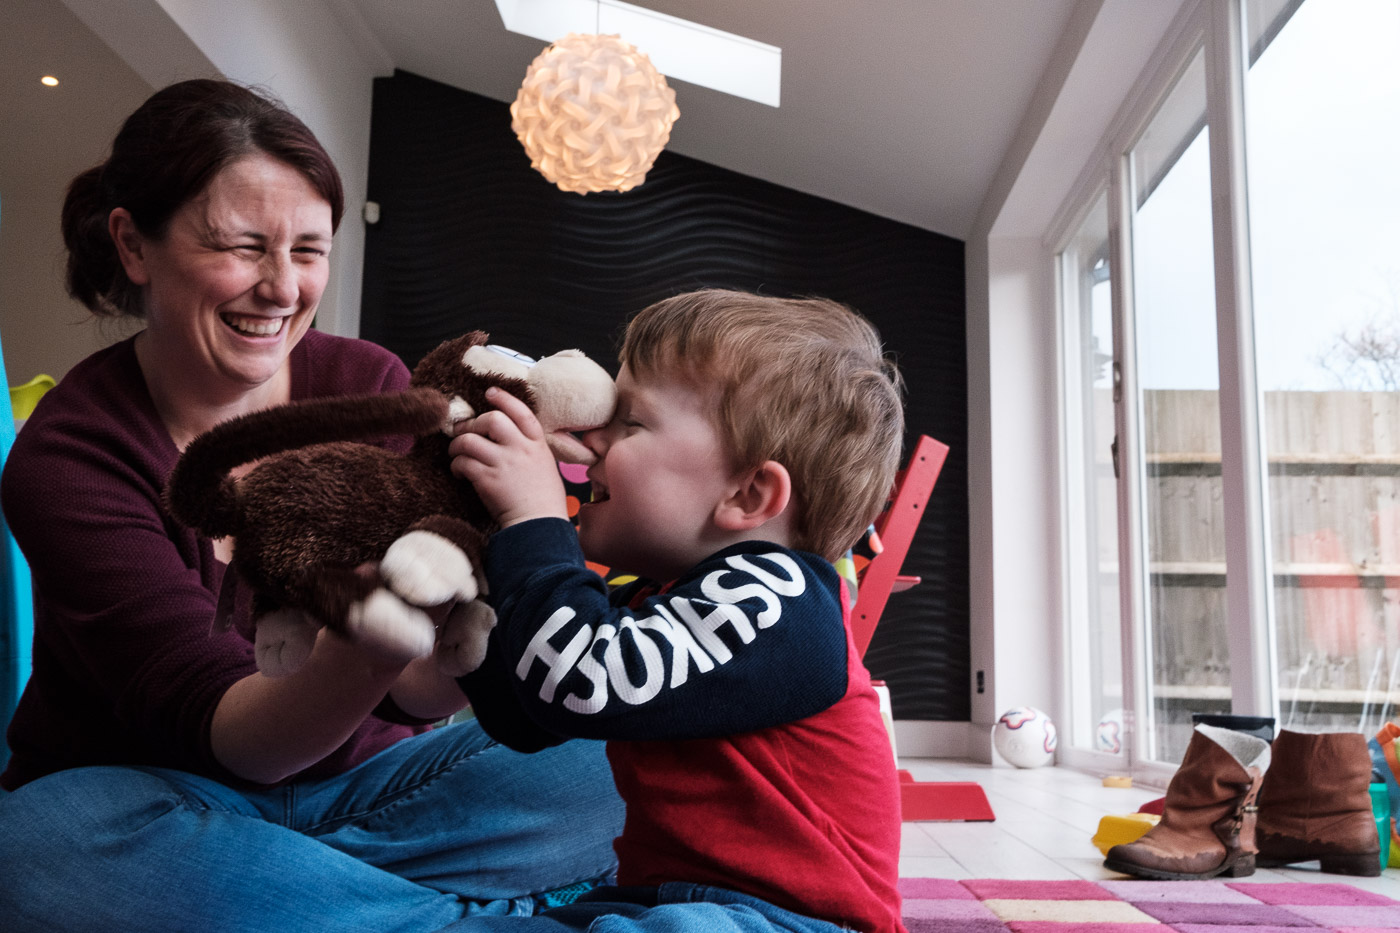 Mother squeezes son's nose with a soft toy